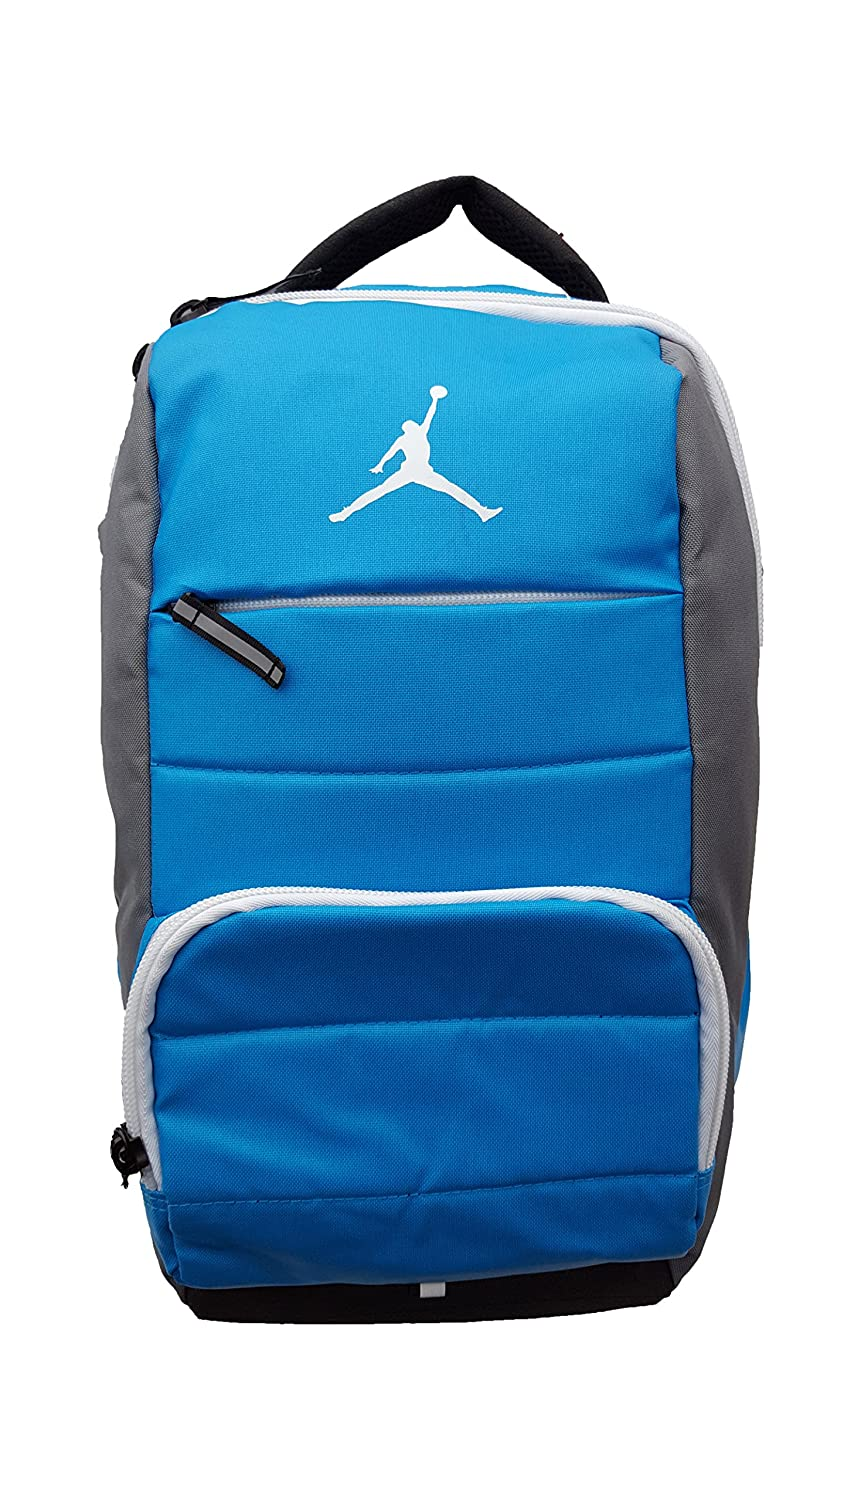 78e7dc70c0c1 Amazon.com  Jordan All World Backpack (One Size